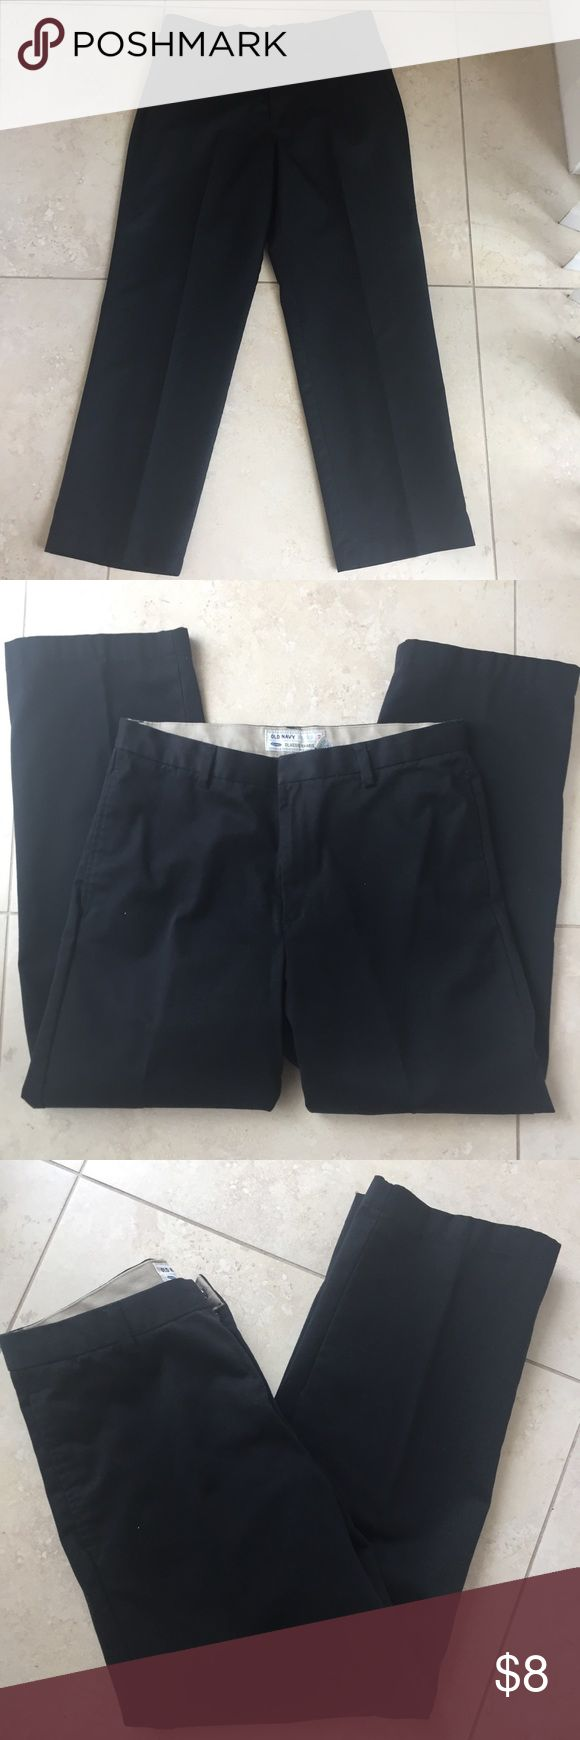 Old navy flat front black khakis pants 34/30 Selling many items similar in size from my husbands closet and offer bundle discount on 3 or more so be sure to check out other listings of similar items you might like..... Old navy classic black flat front khakis slacks 34/30 good condition no flaws! Old Navy Pants Chinos & Khakis